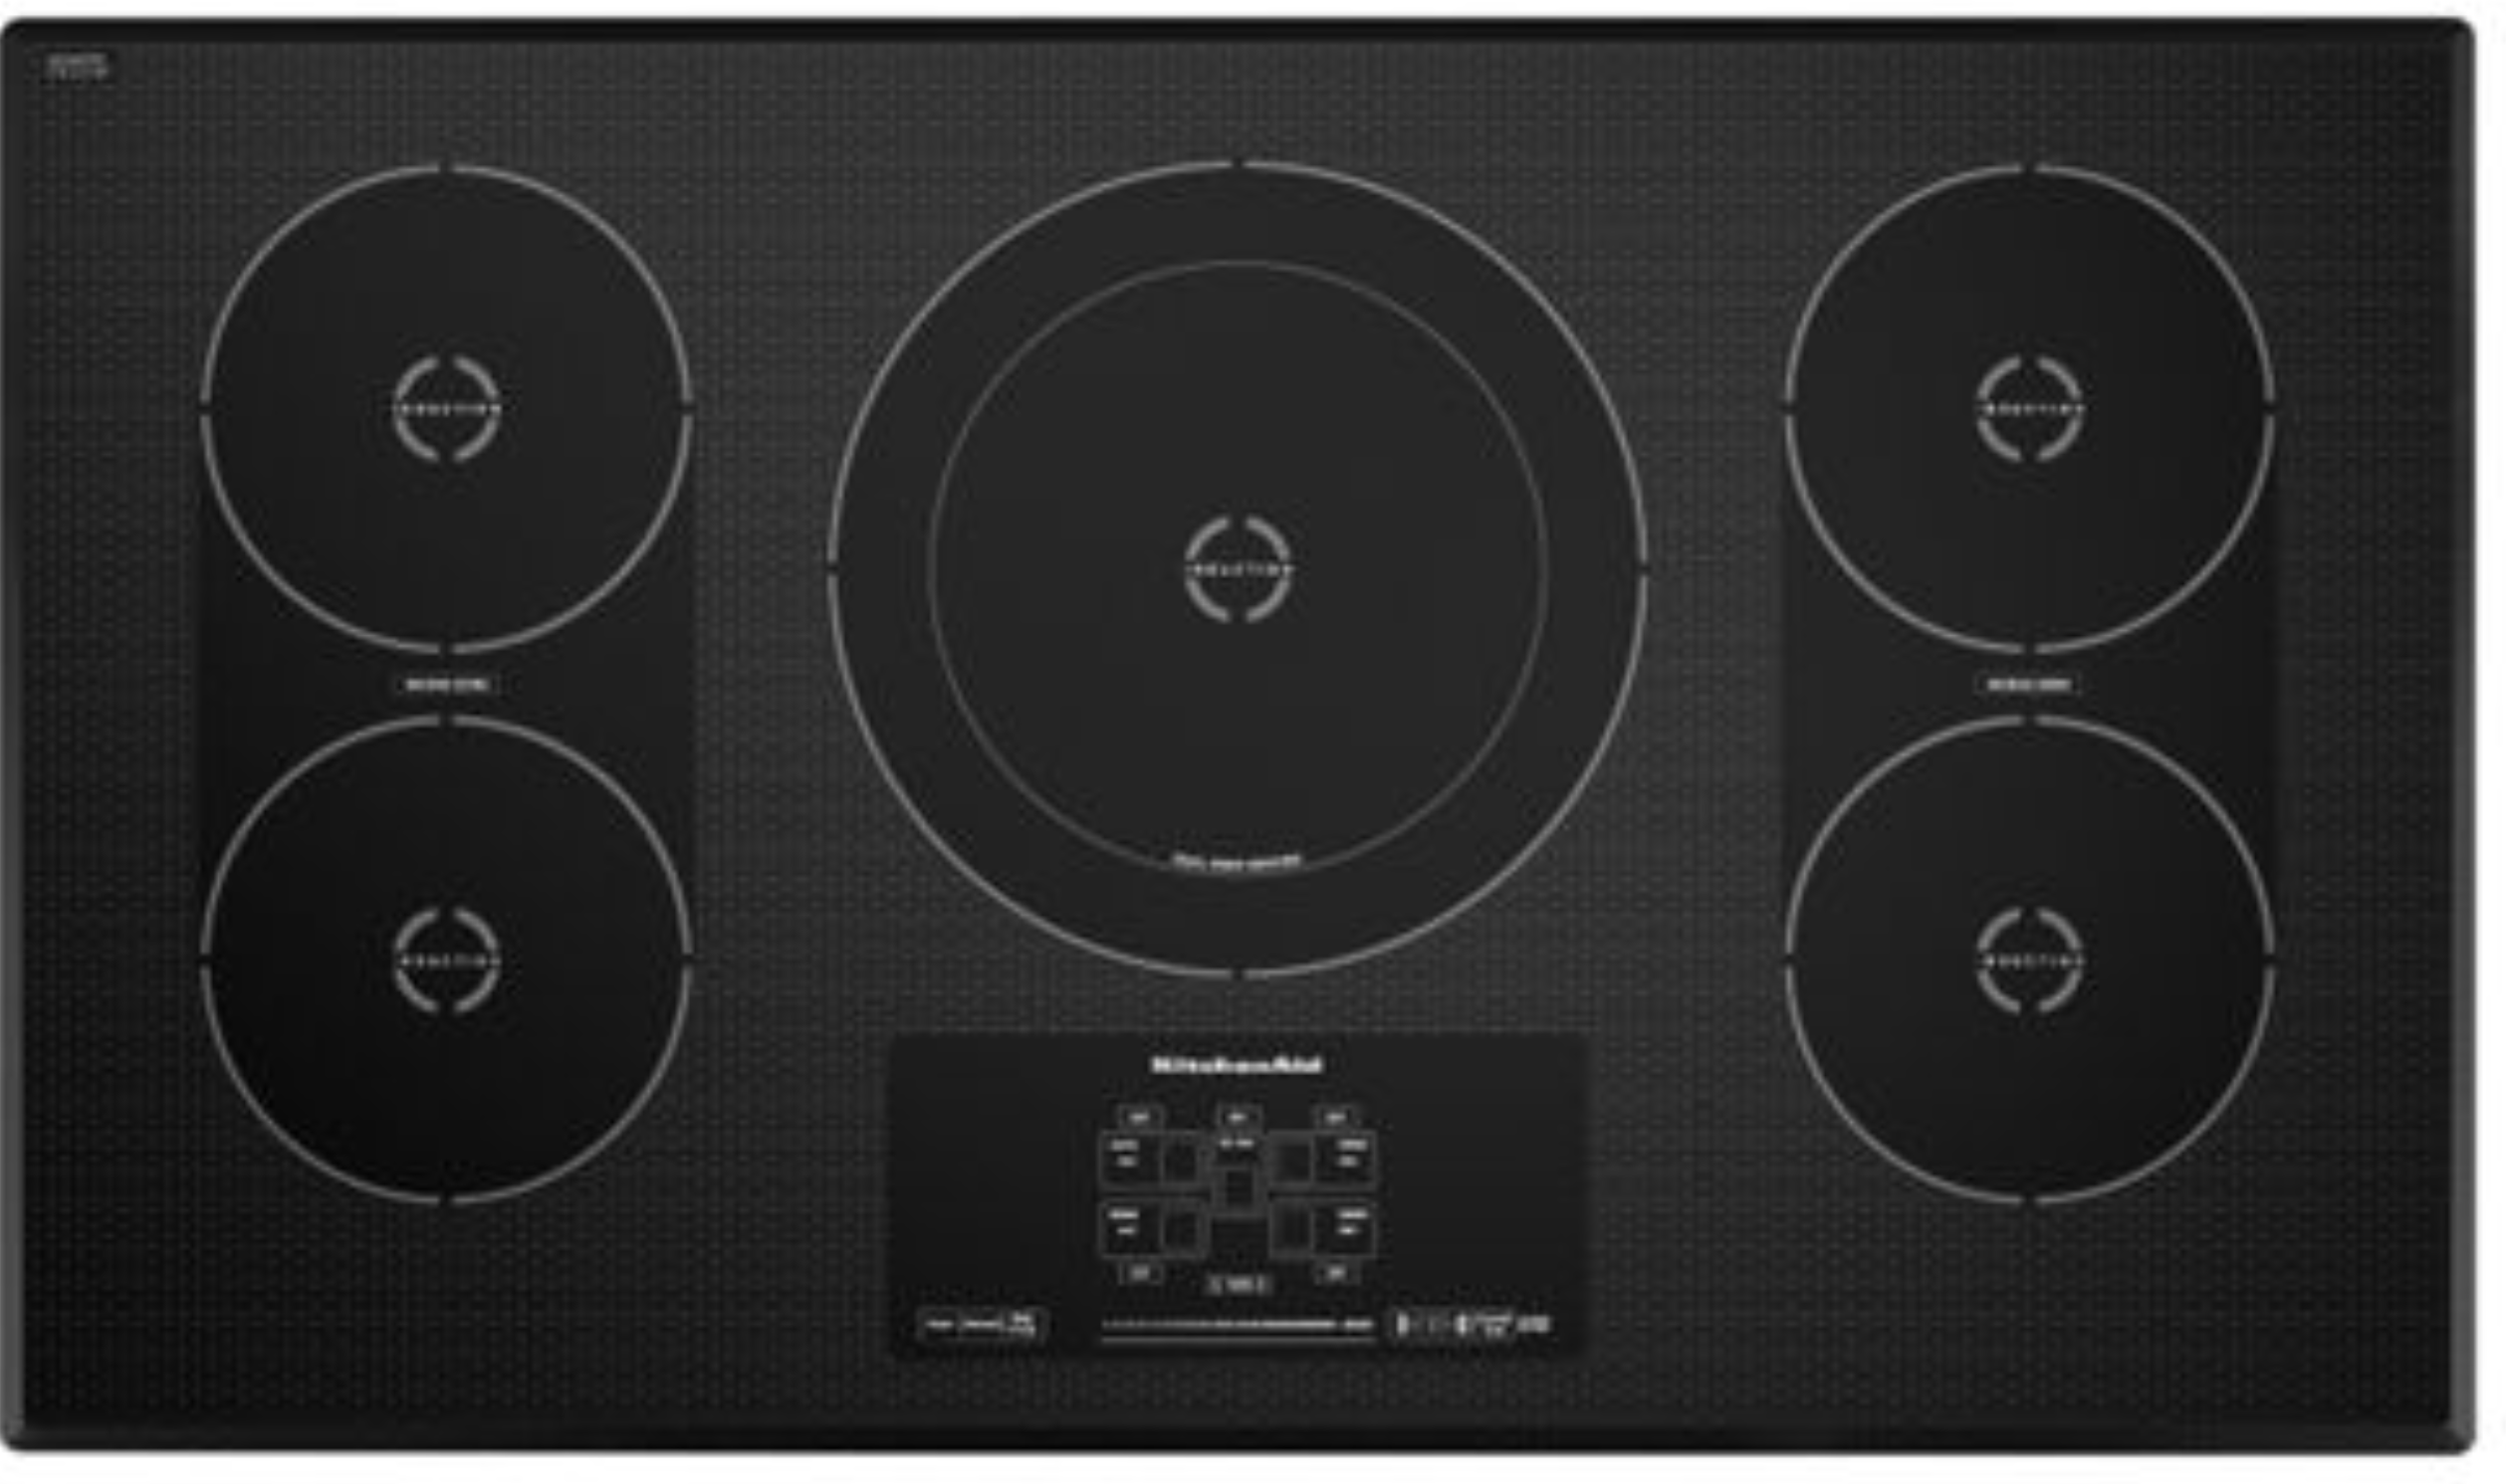 Black 36 Inch 5 Element Induction Cooktop Architect Series Ii Kicu569xbl Kitchenaid In 2020 Induction Cooktop Cool Things To Buy Kitchen Aid